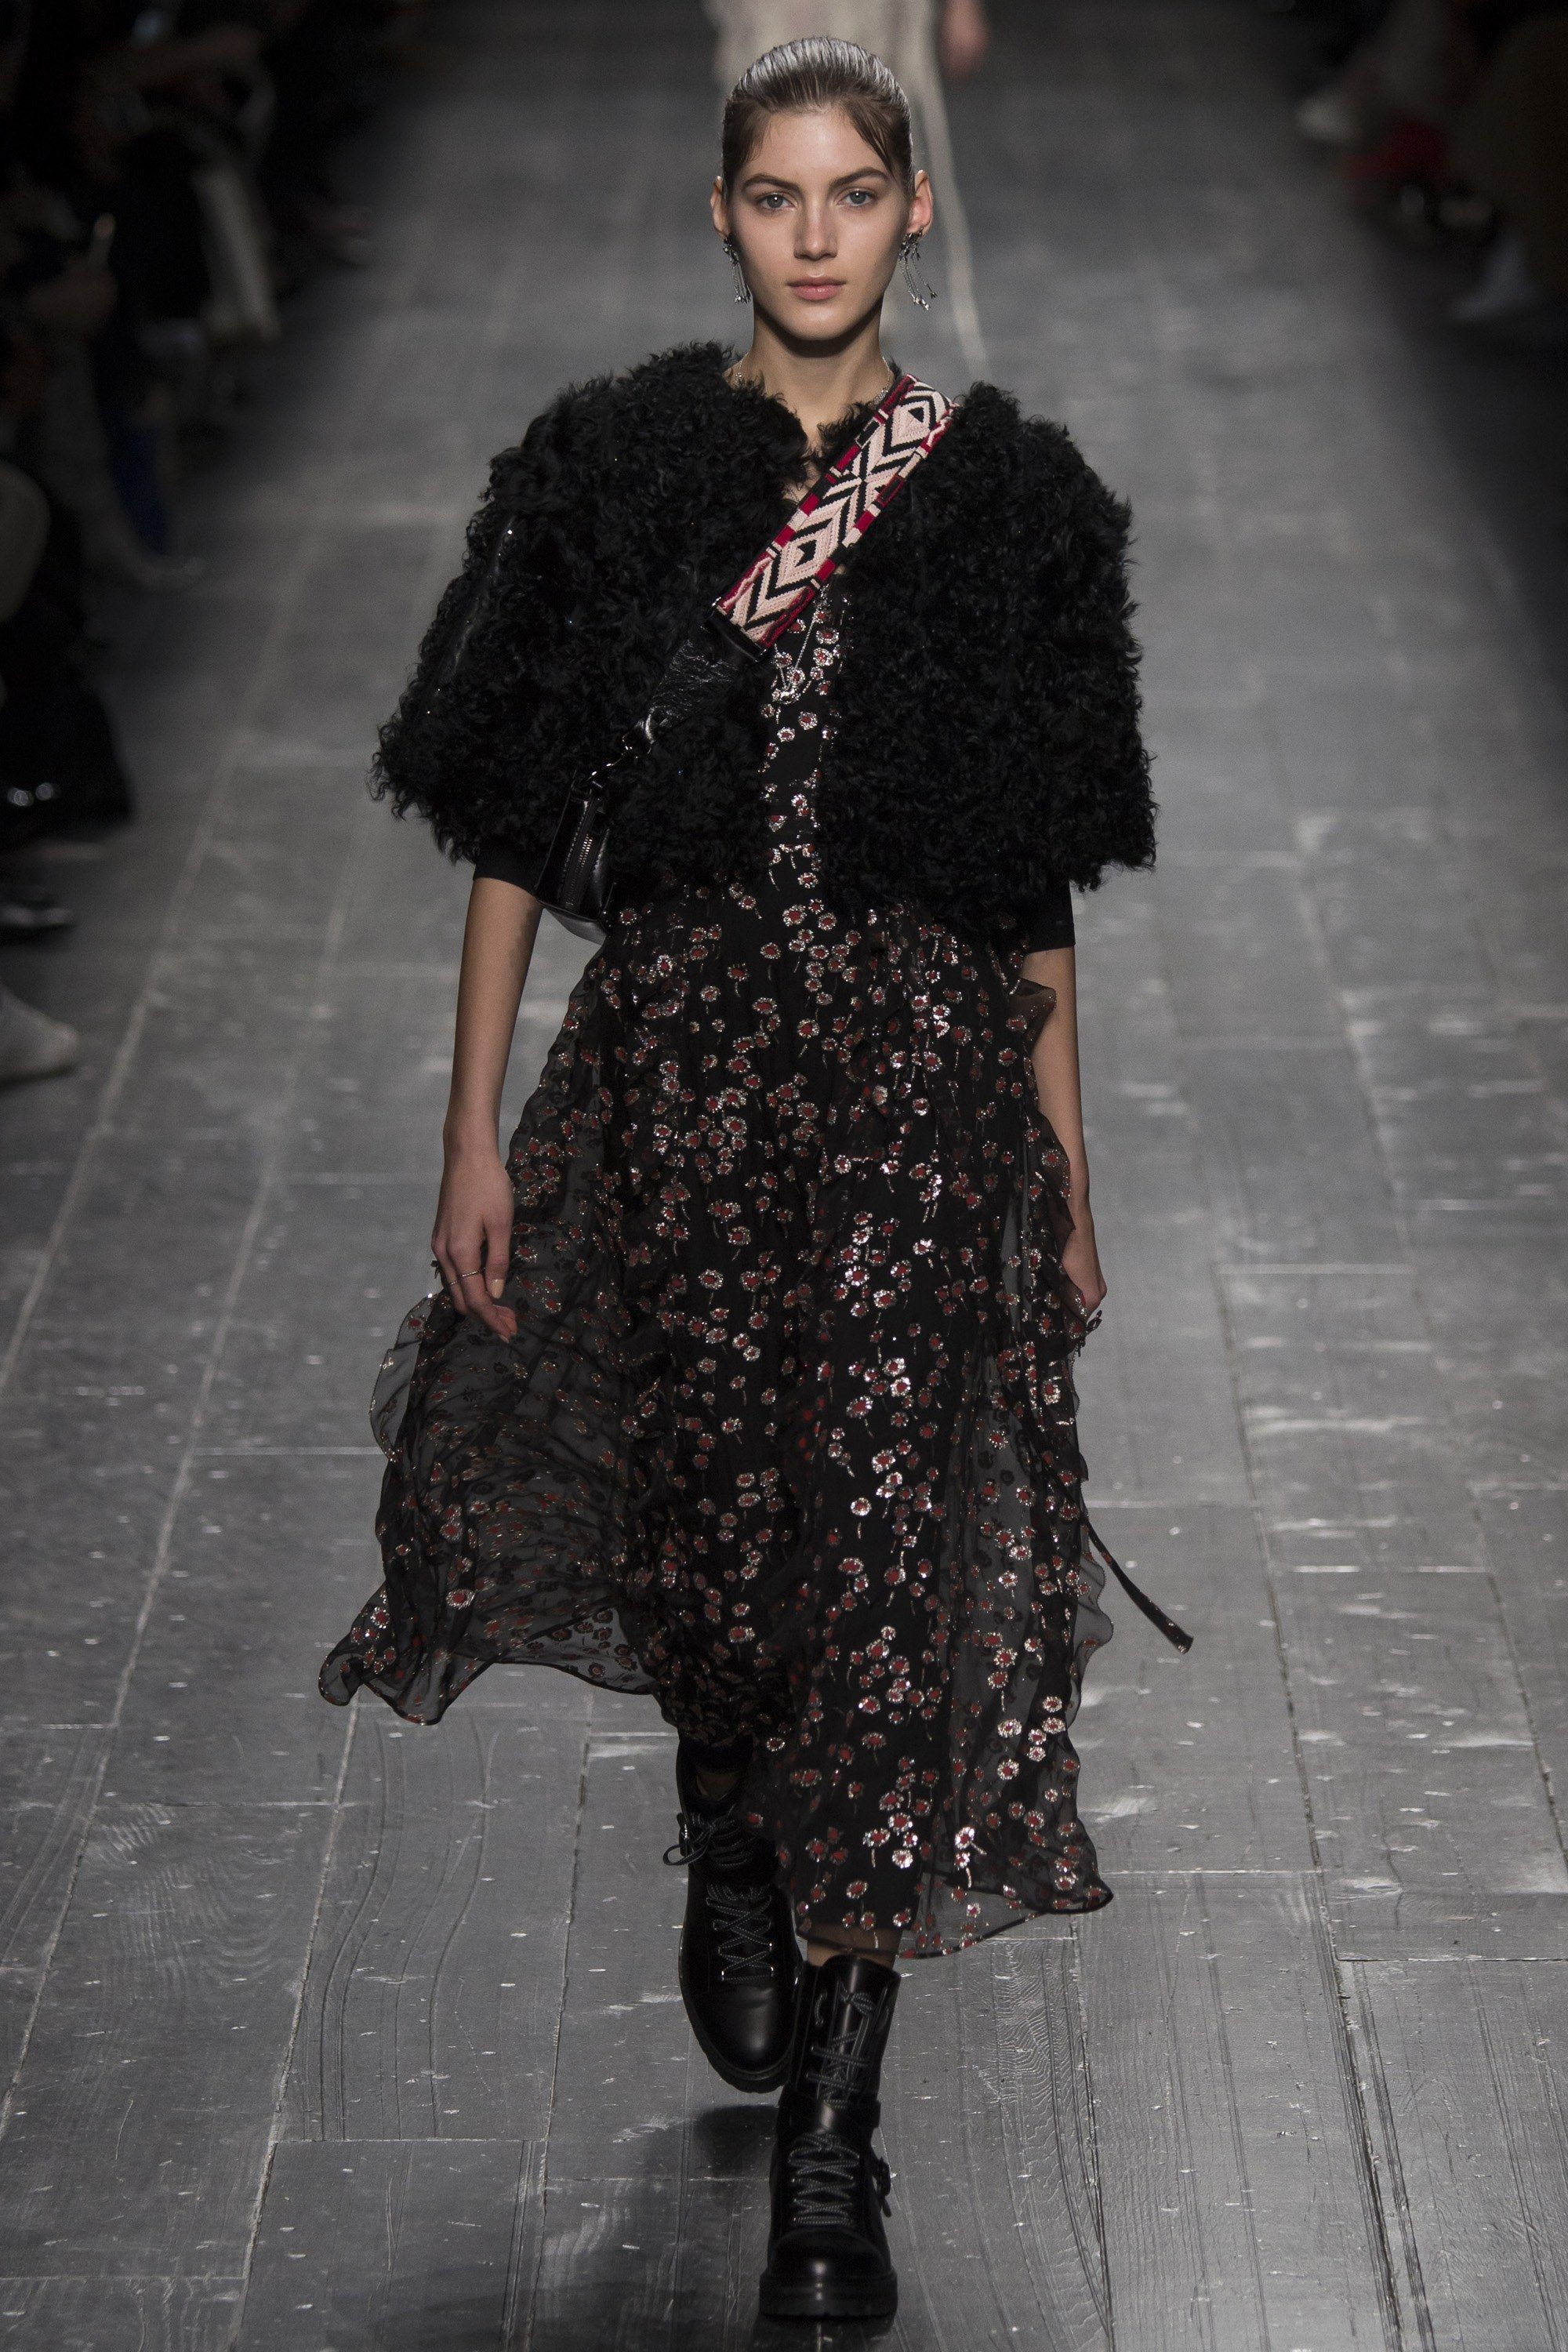 Valentino Fall 2016 Ready-to-Wear Fashion Show - Valery Kaufman (Elite)